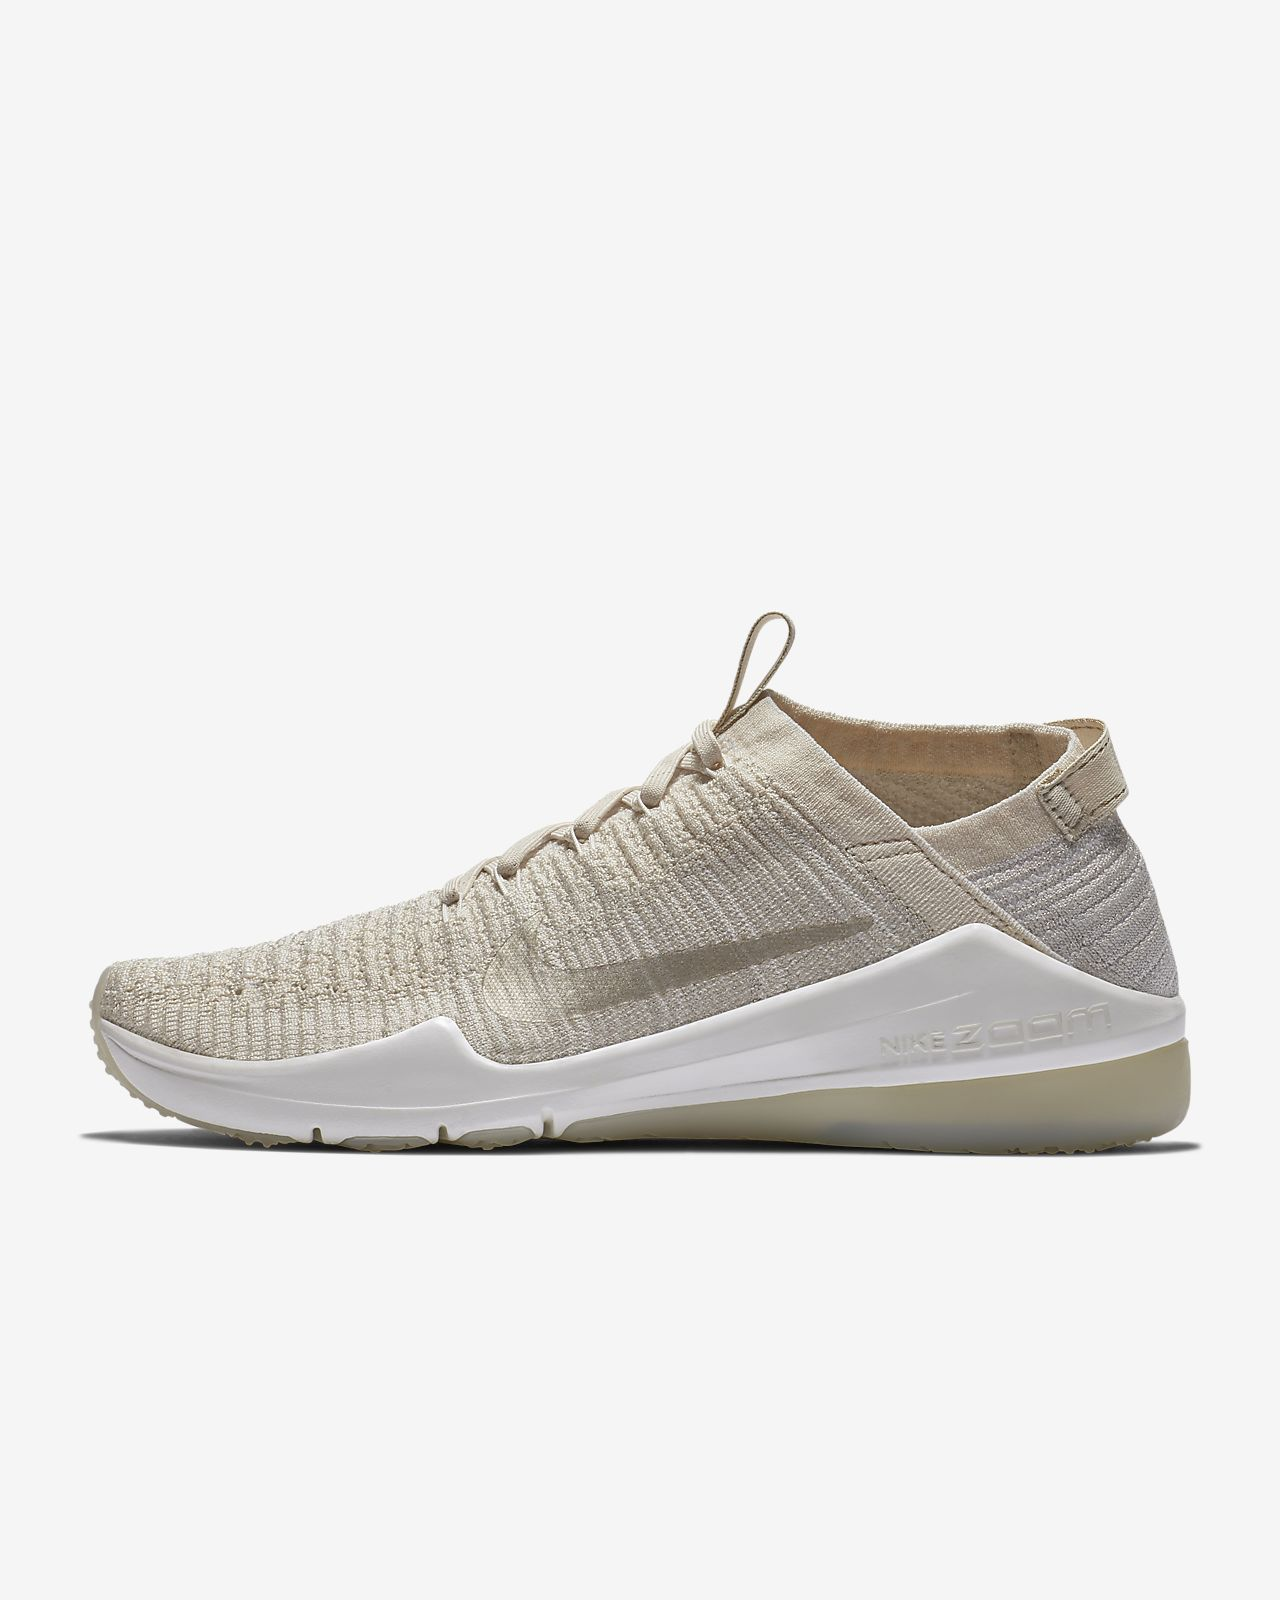 Nike Air Zoom Fearless Flyknit 2 Champagne Women s Training Shoe ... 4f063204e3f